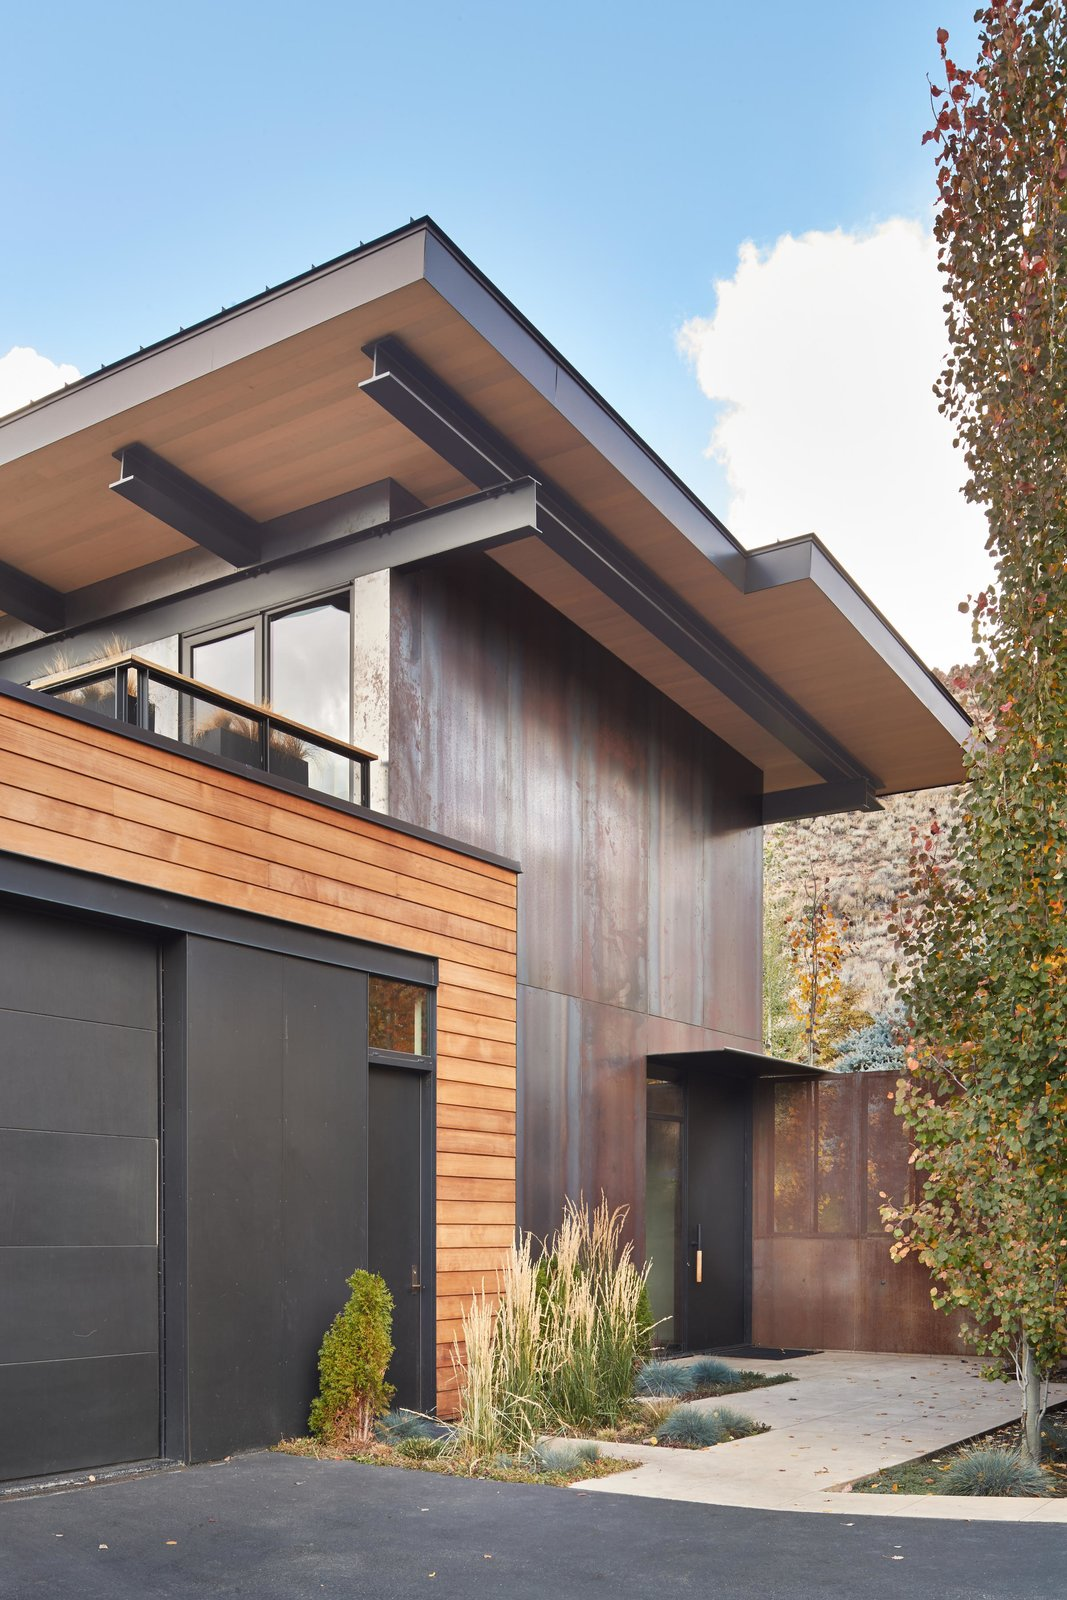 Lake Creek Residence | Olson Kundig